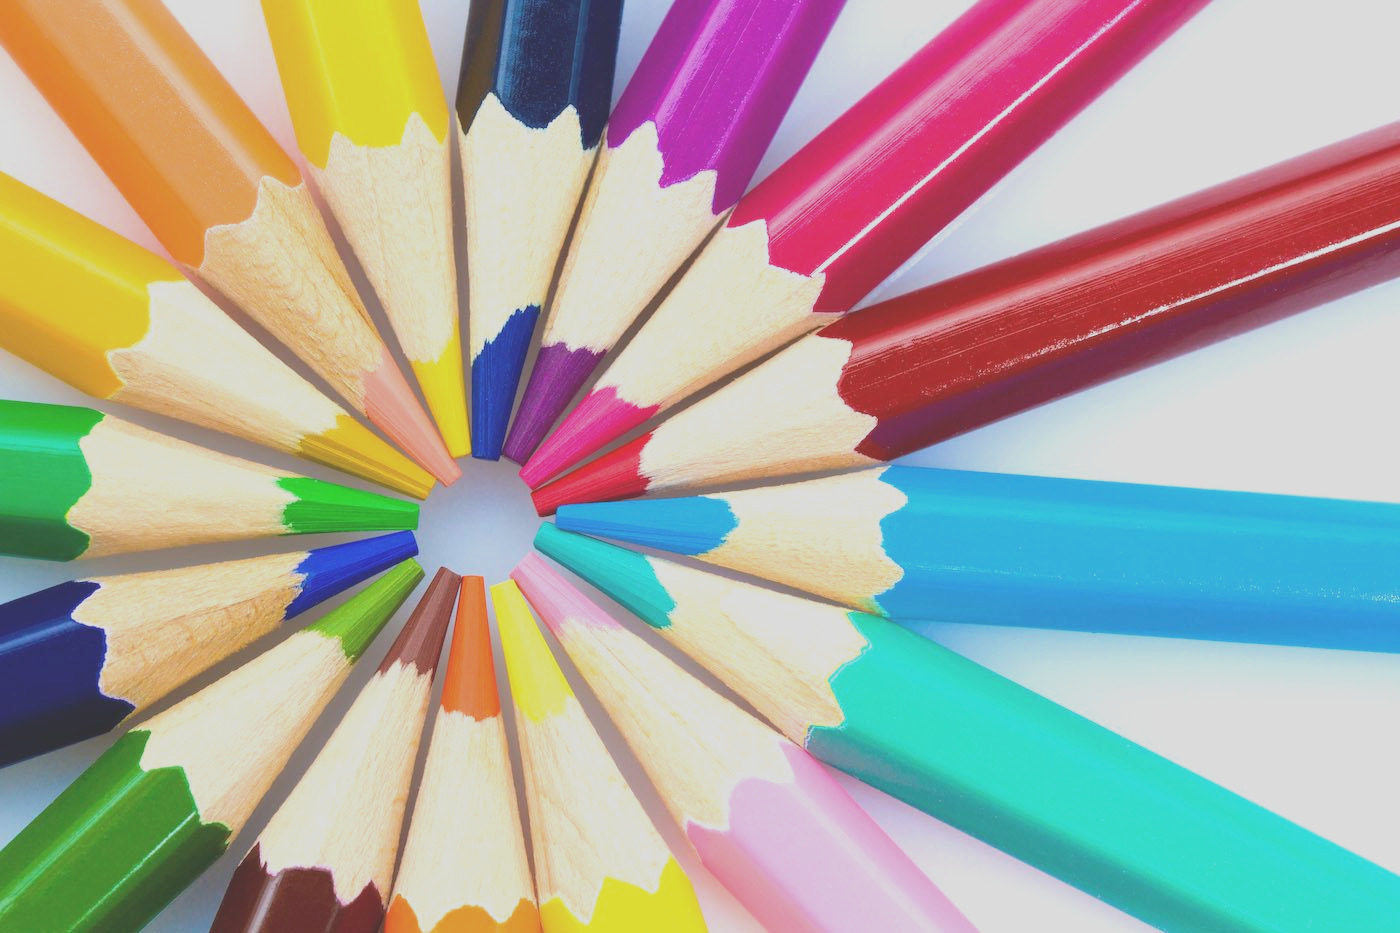 adult coloring books a synonym for stress relief